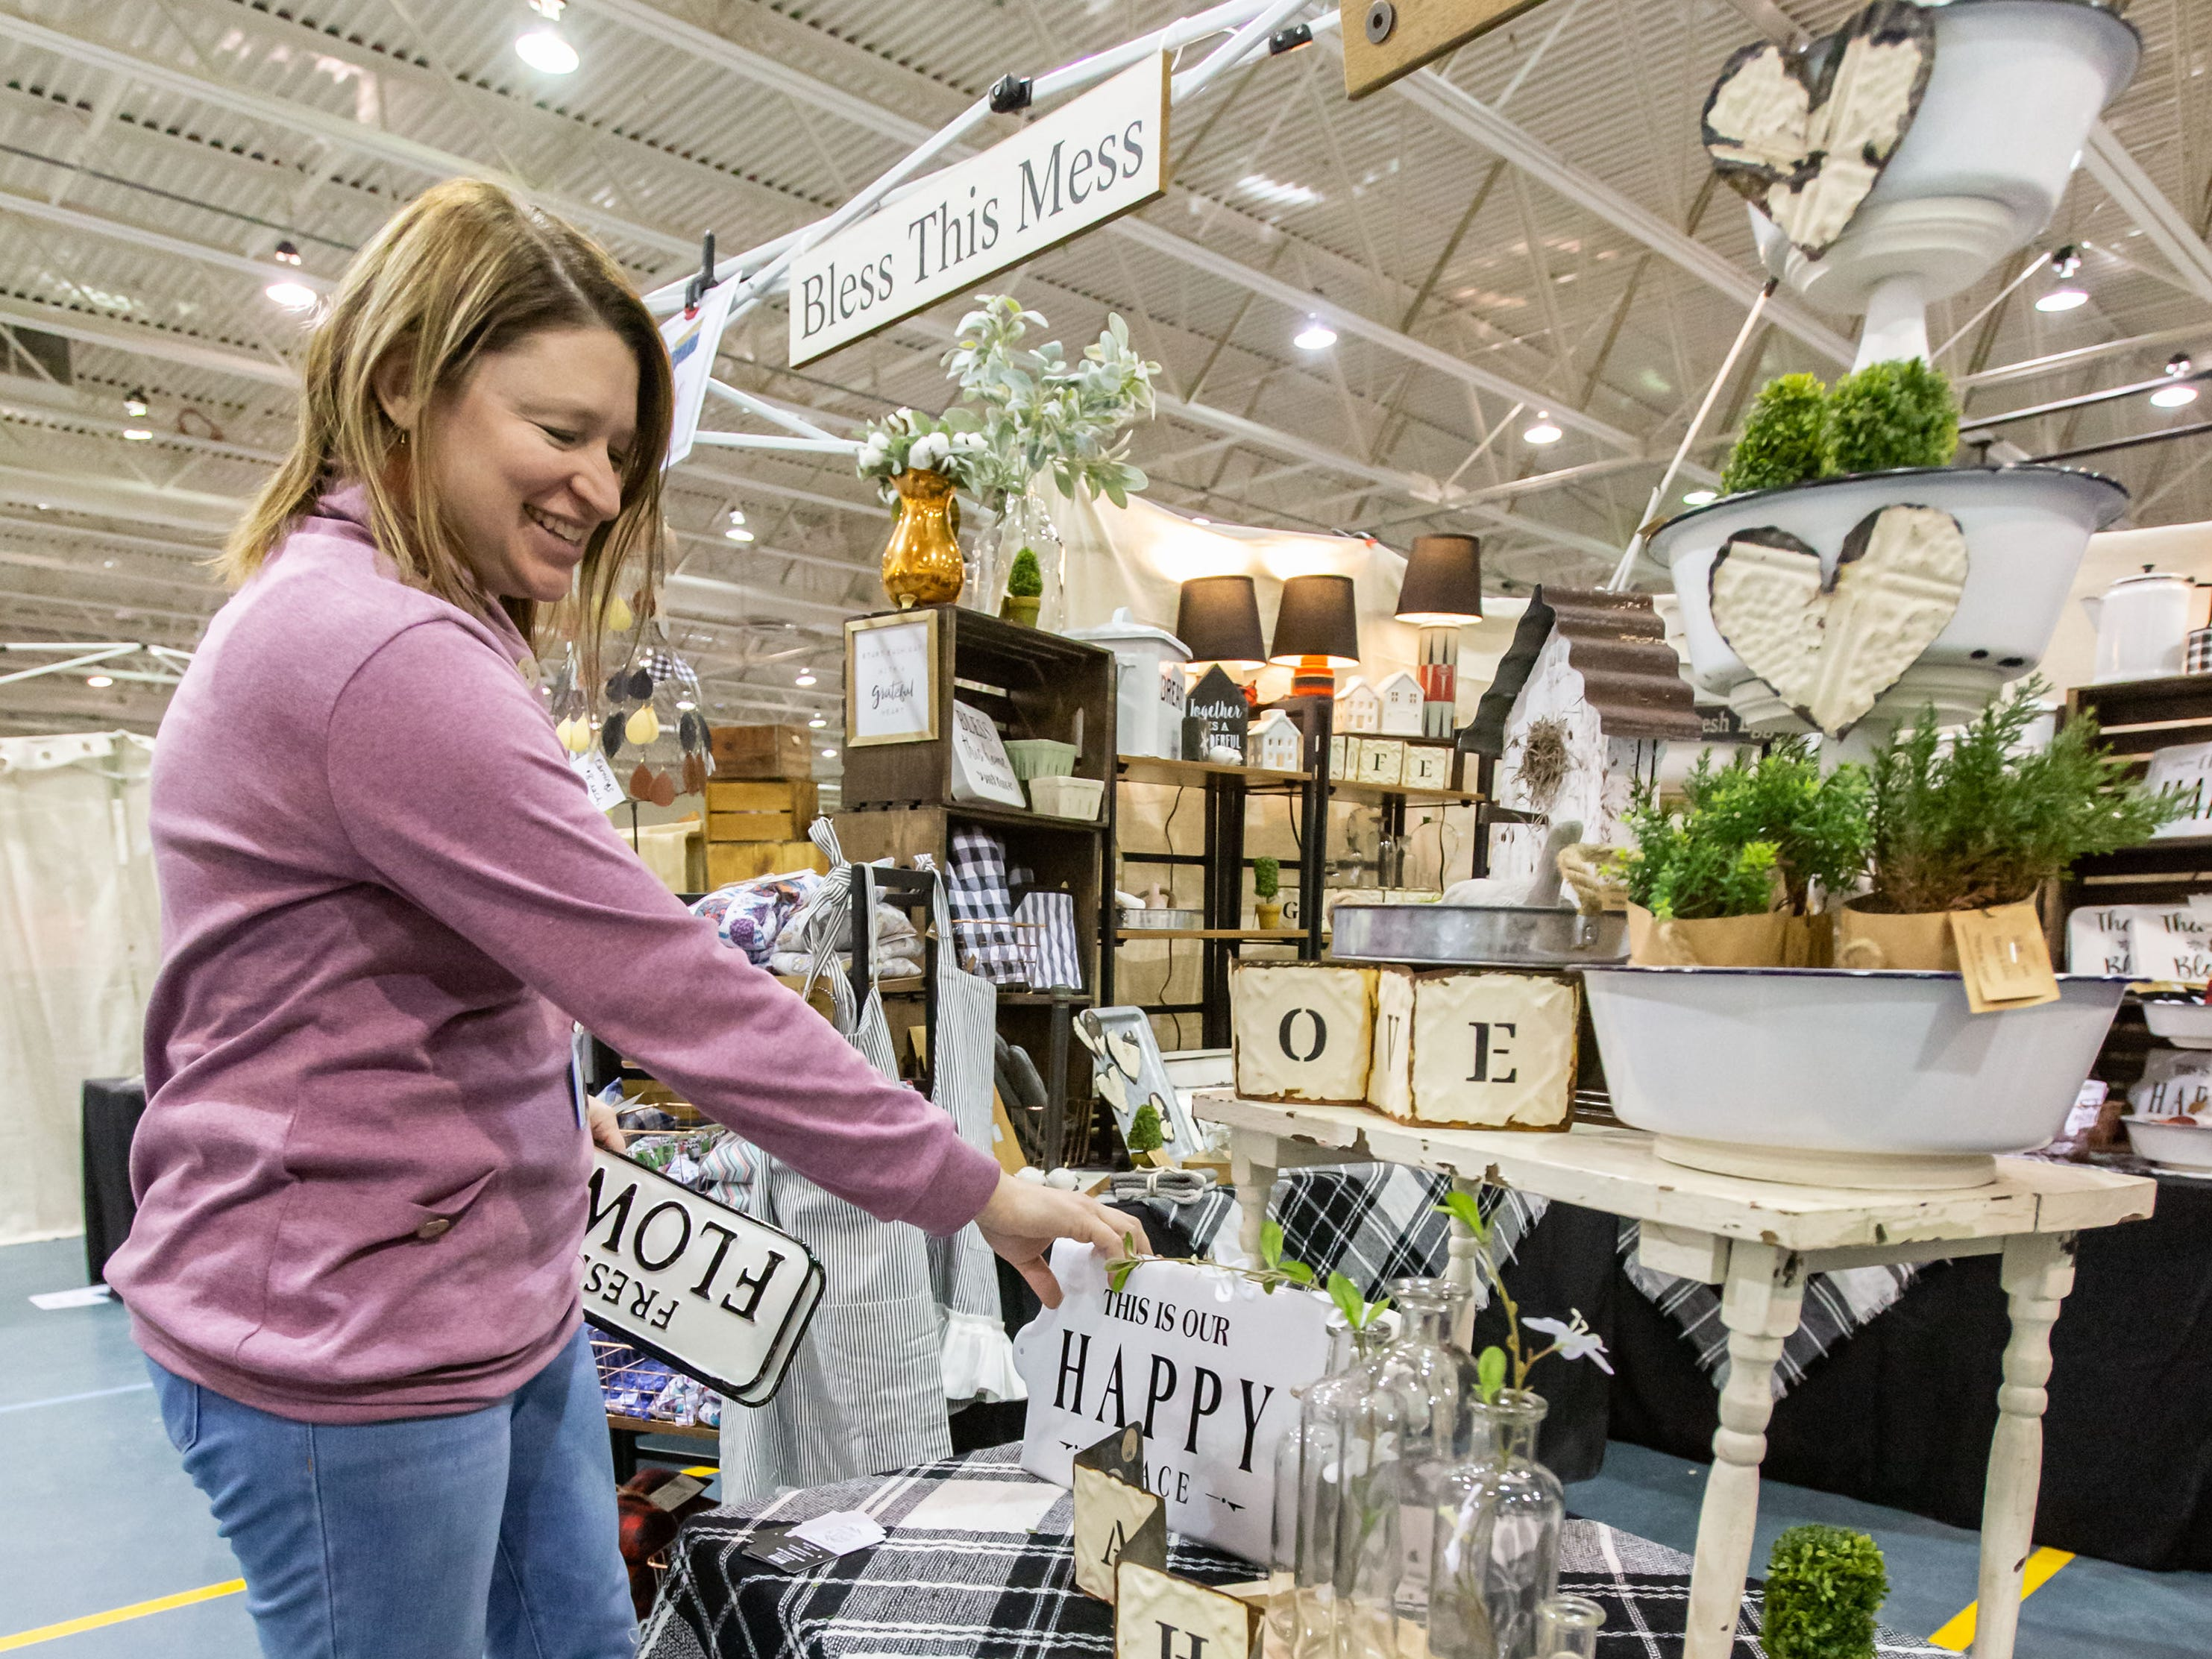 Kate Petersen of Hattie and Elsie in Janesville organizes her booth during the re:Craft and Relic show at the Milwaukee County Sports Complex in Franklin on Sunday, Jan. 27, 2019. The show offers vintage, upcycled, antique, handcrafted, reclaimed, and locally-sourced goods.